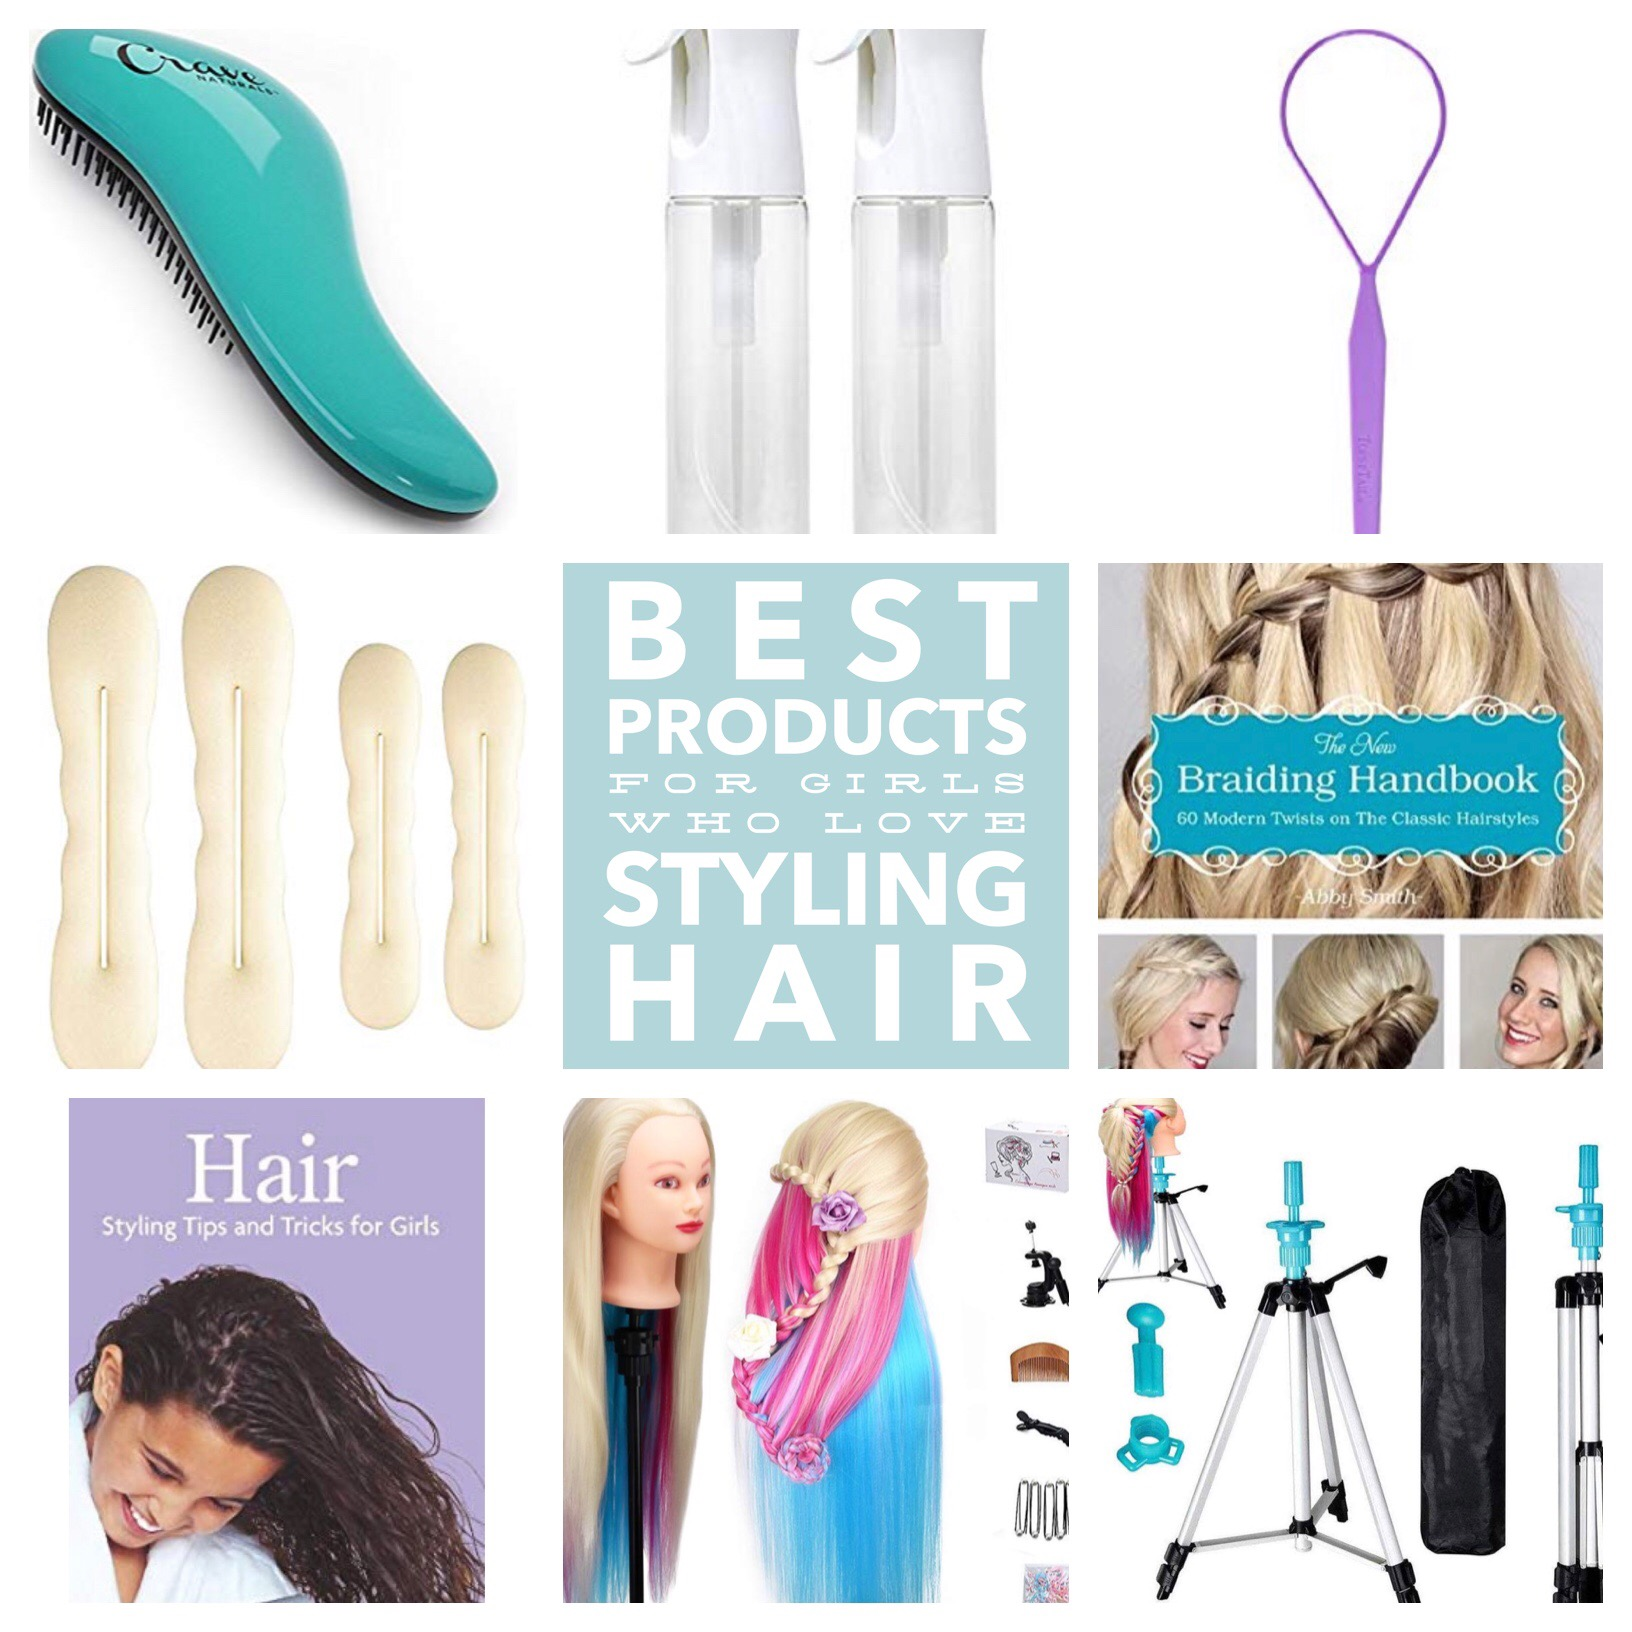 Best Products for Girls Who Love Styling Hair